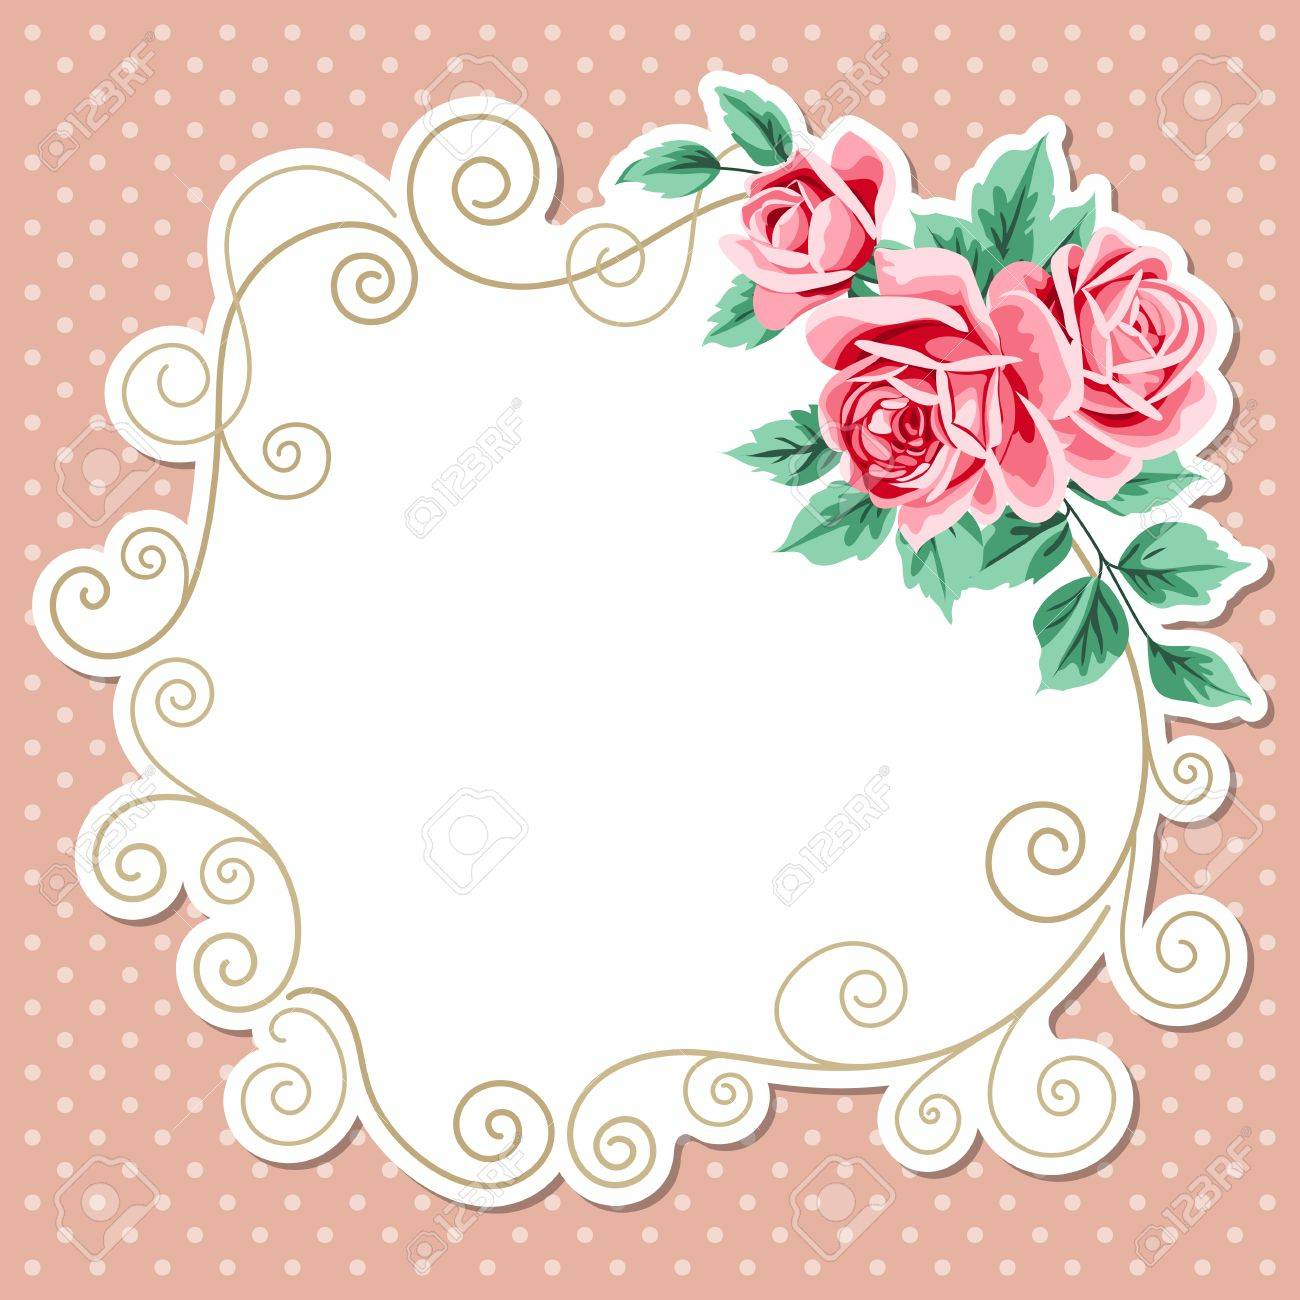 Polka Dot Background With Hand Draw Floral Wreath Vintage Roses Shabby Chic Vector Illustration